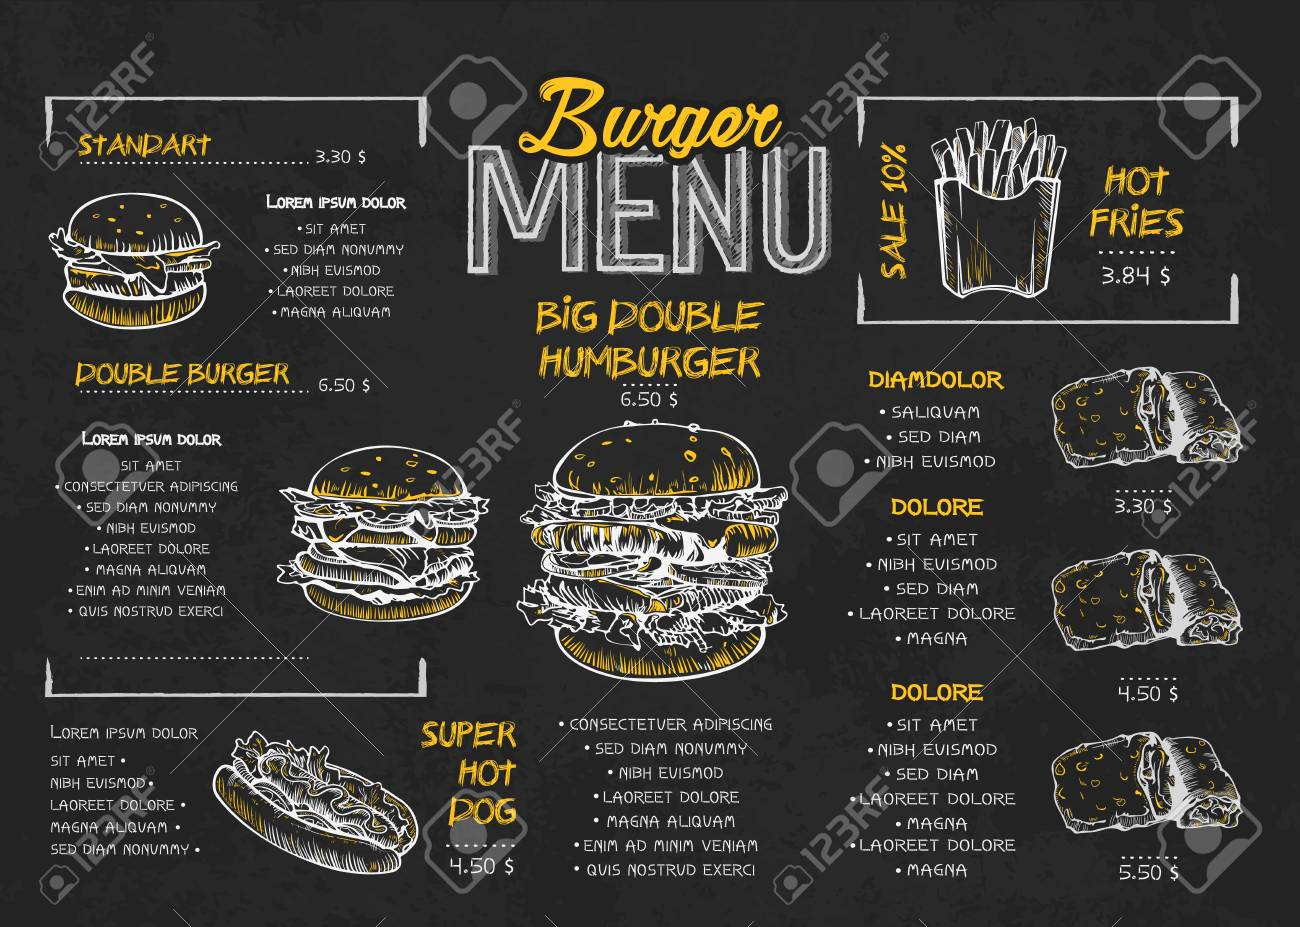 Burger menu poster design on the chalkboard elements. Fast food menu skech style. Can be used for layout, banner, web design, brochure template. Vector illustration. - 120842849